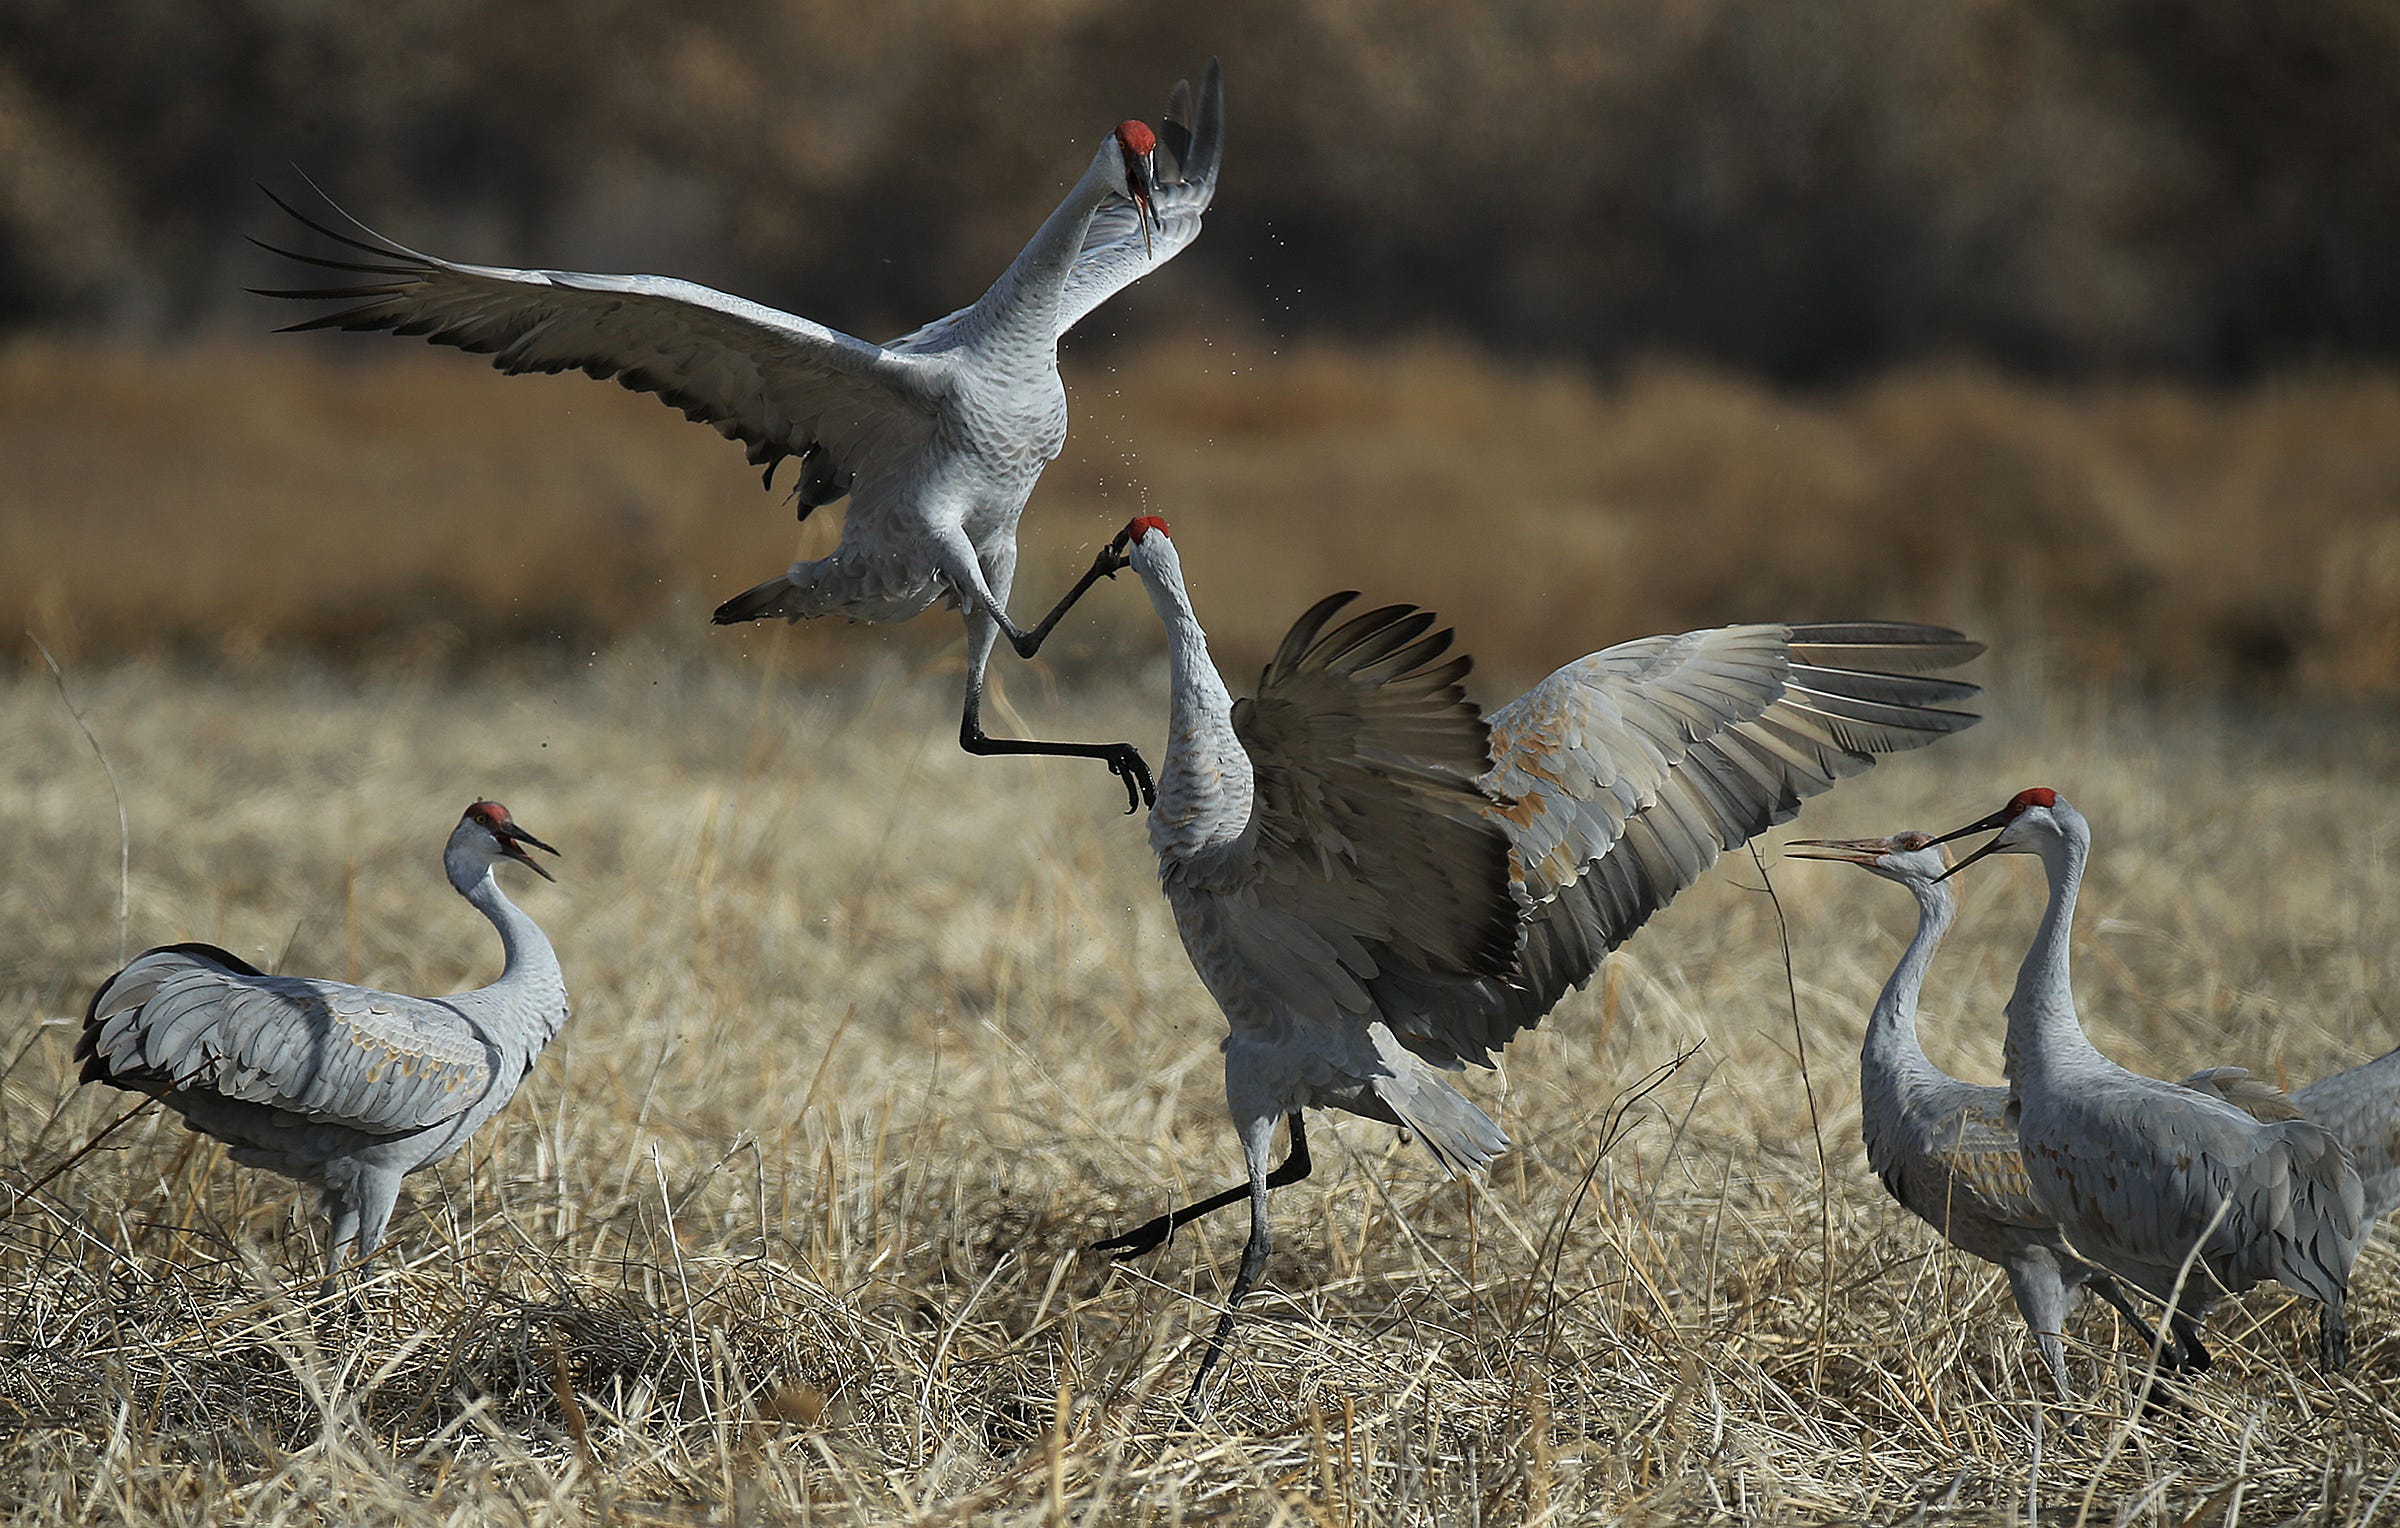 Sandhill cranes face off in a ruffle bow at Bosque del Apache National Wildlife Refuge in New Mexico in 2018. The annual Festival of the Cranes was canceled in 2020 and 2021 due to the COVID-19 pandemic.